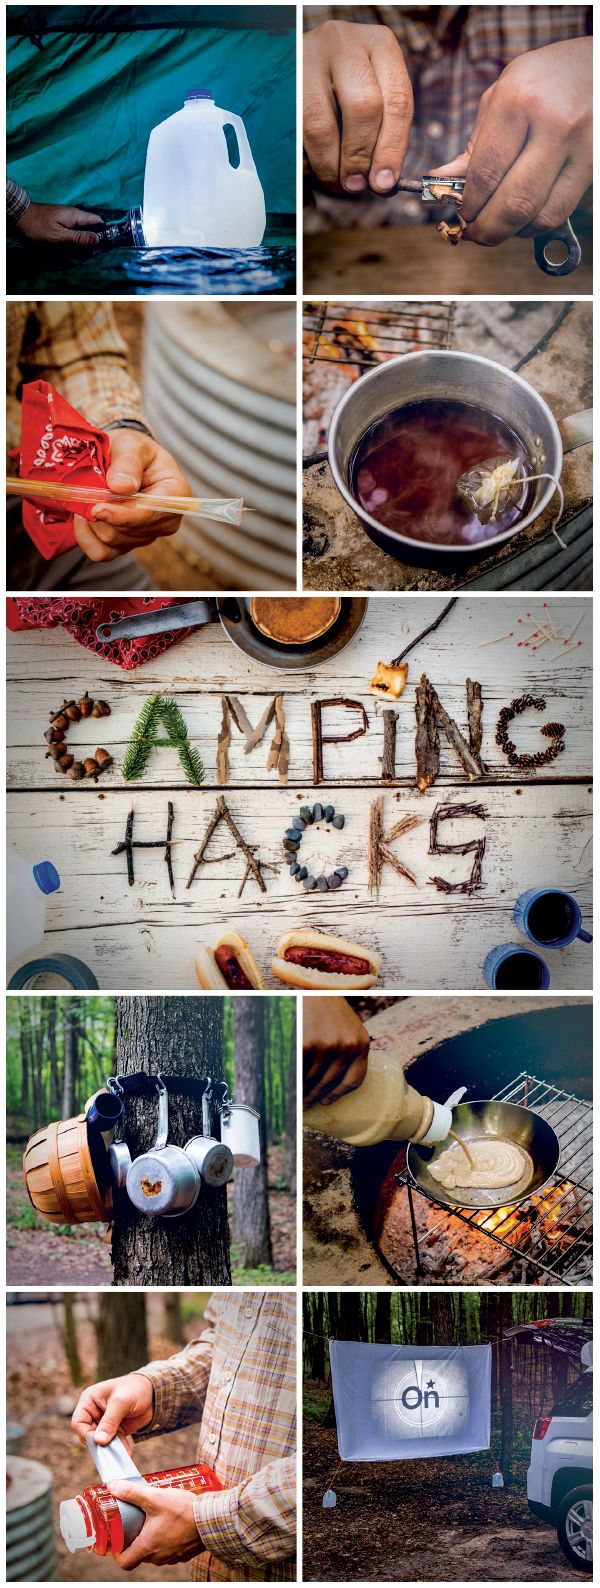 #Camping #tips and tricks that will change the way you #camp forever! See them